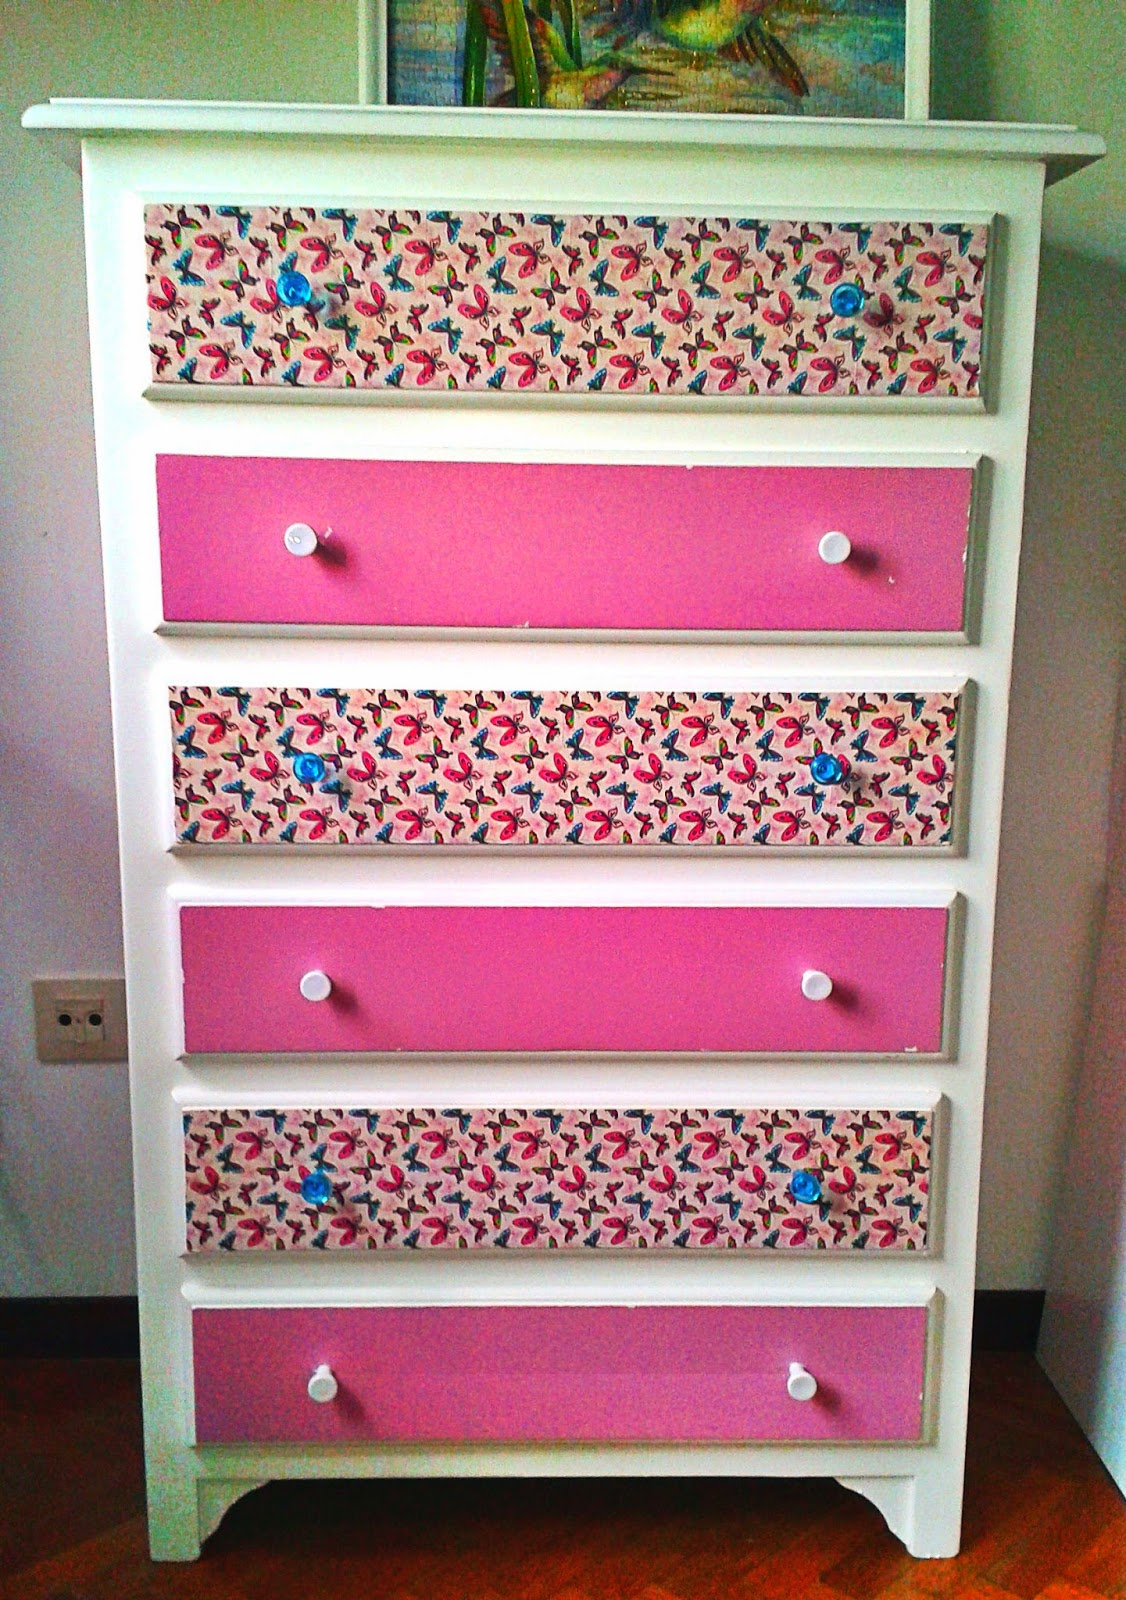 Como Decorar Un Mueble Recicla Decora Crea Idea Para Transformar Una